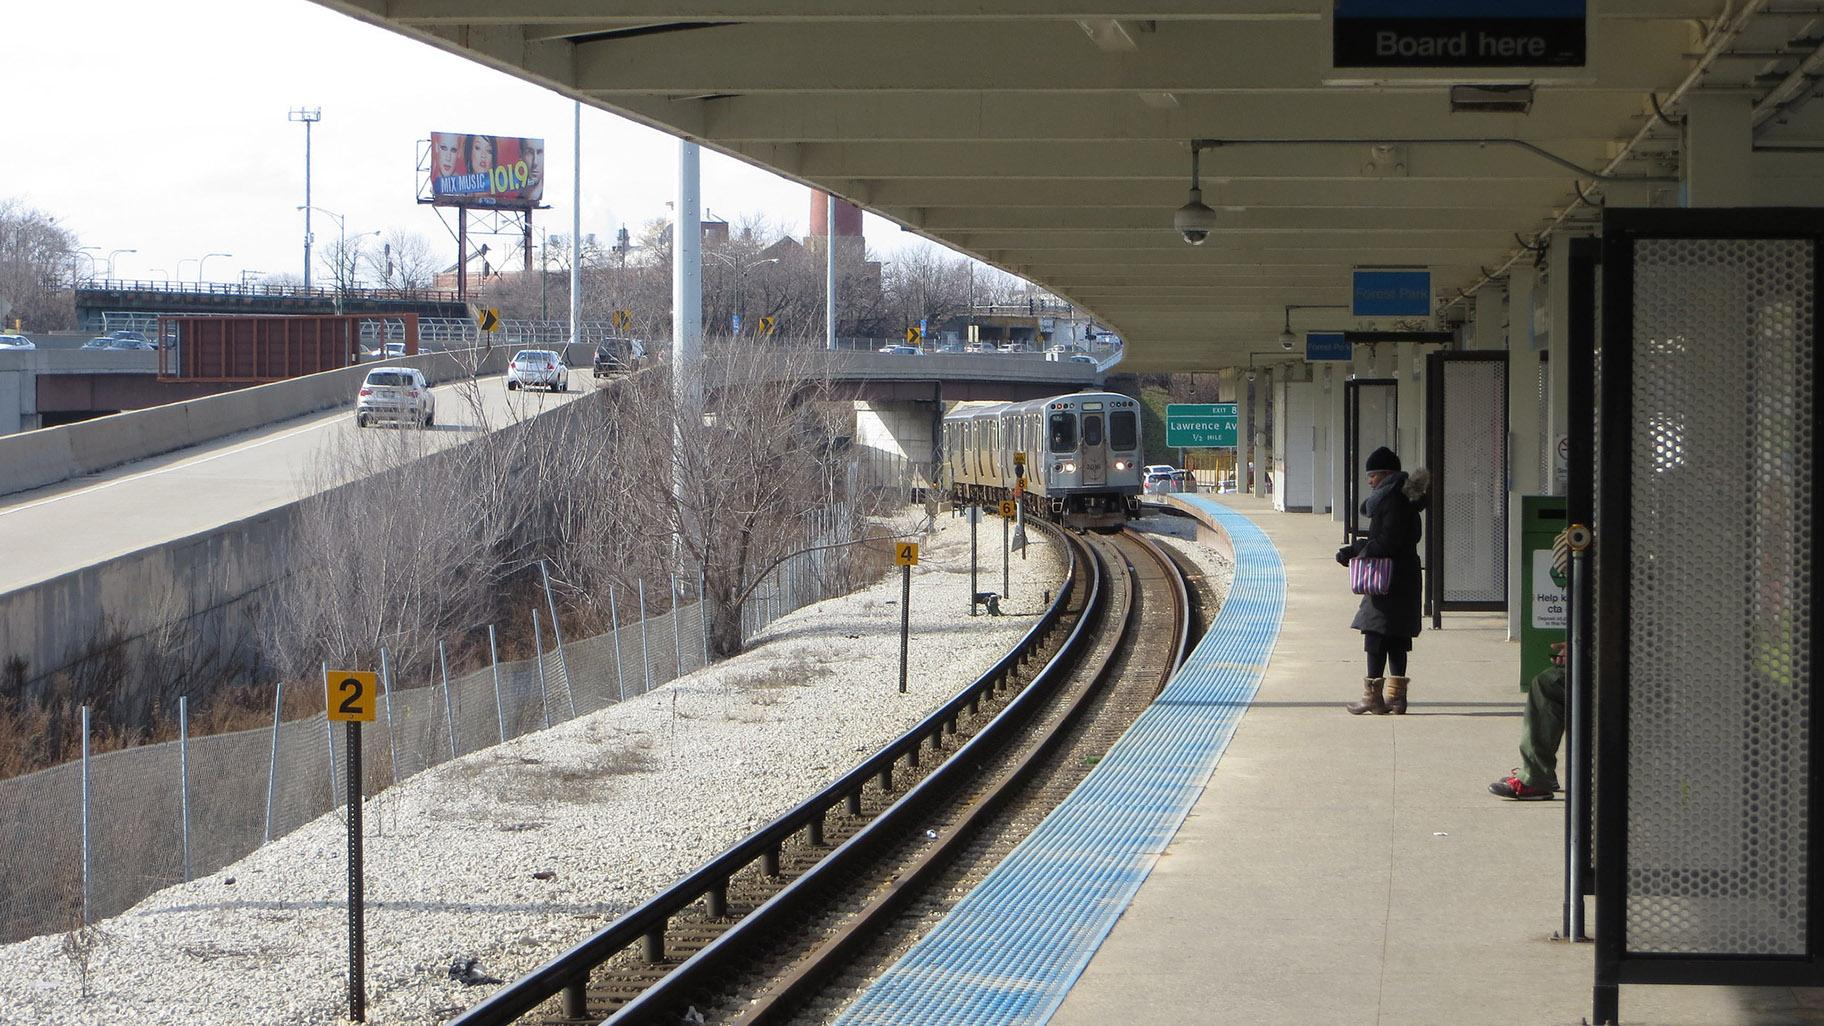 Taking the Blue Line this weekend? The Grand station will be closed from 10 p.m. Friday through 4 a.m. Monday. Other closures are set for Red Line stations in Edgewater. (David Wilson / Flickr)